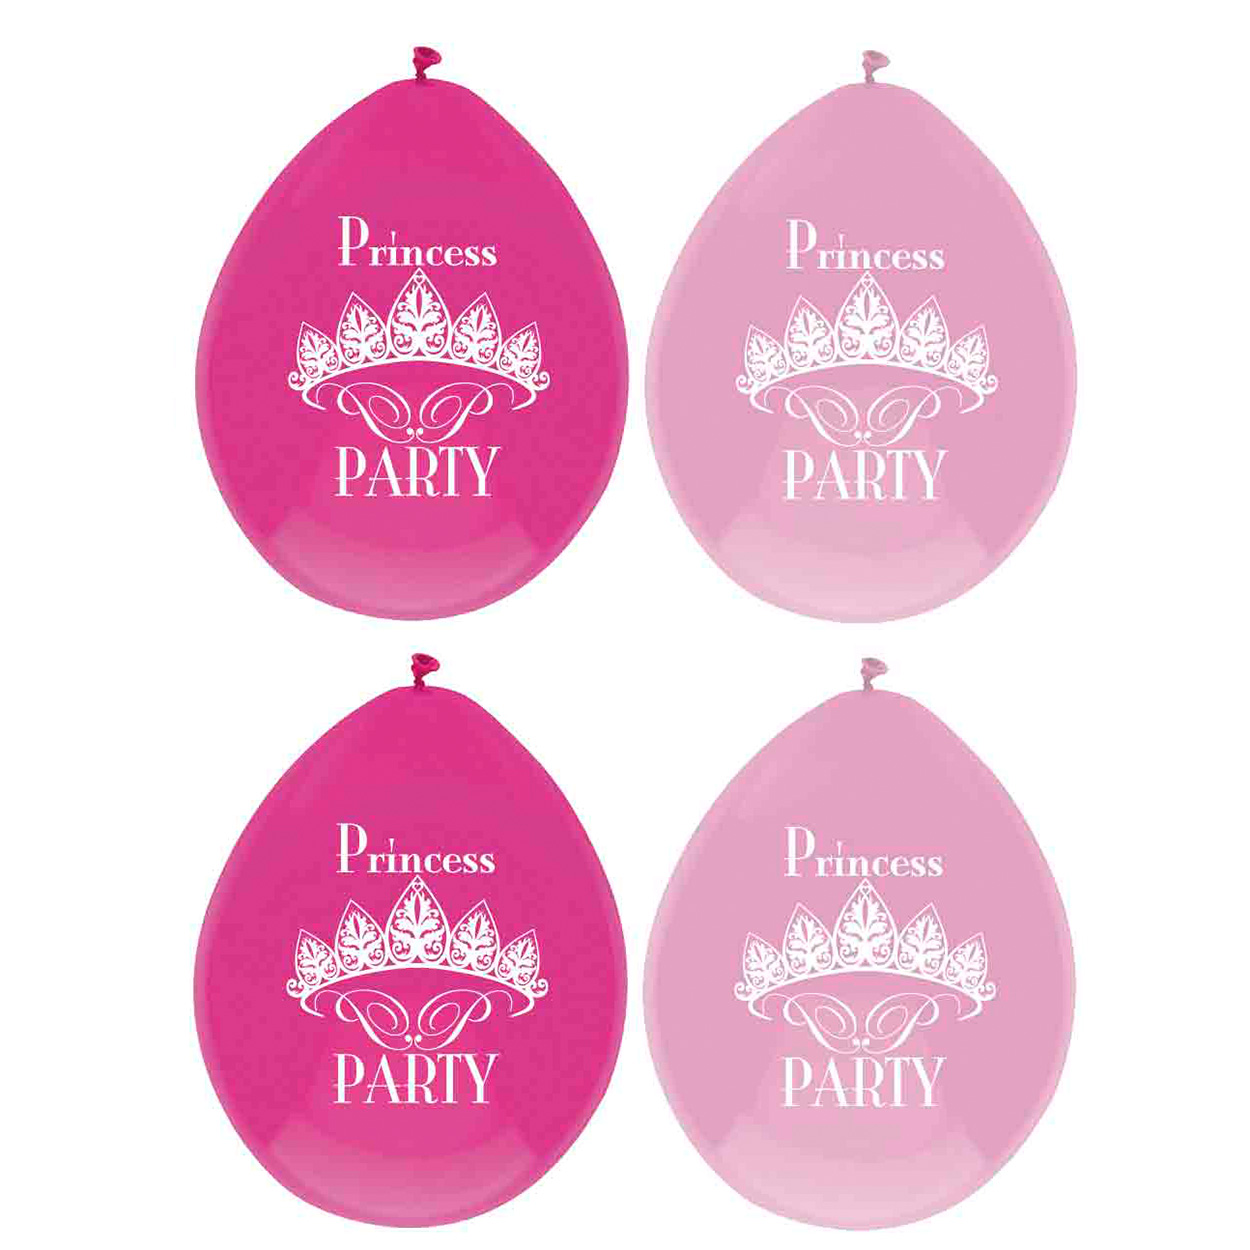 Ballonnen Princess Party, 6st.